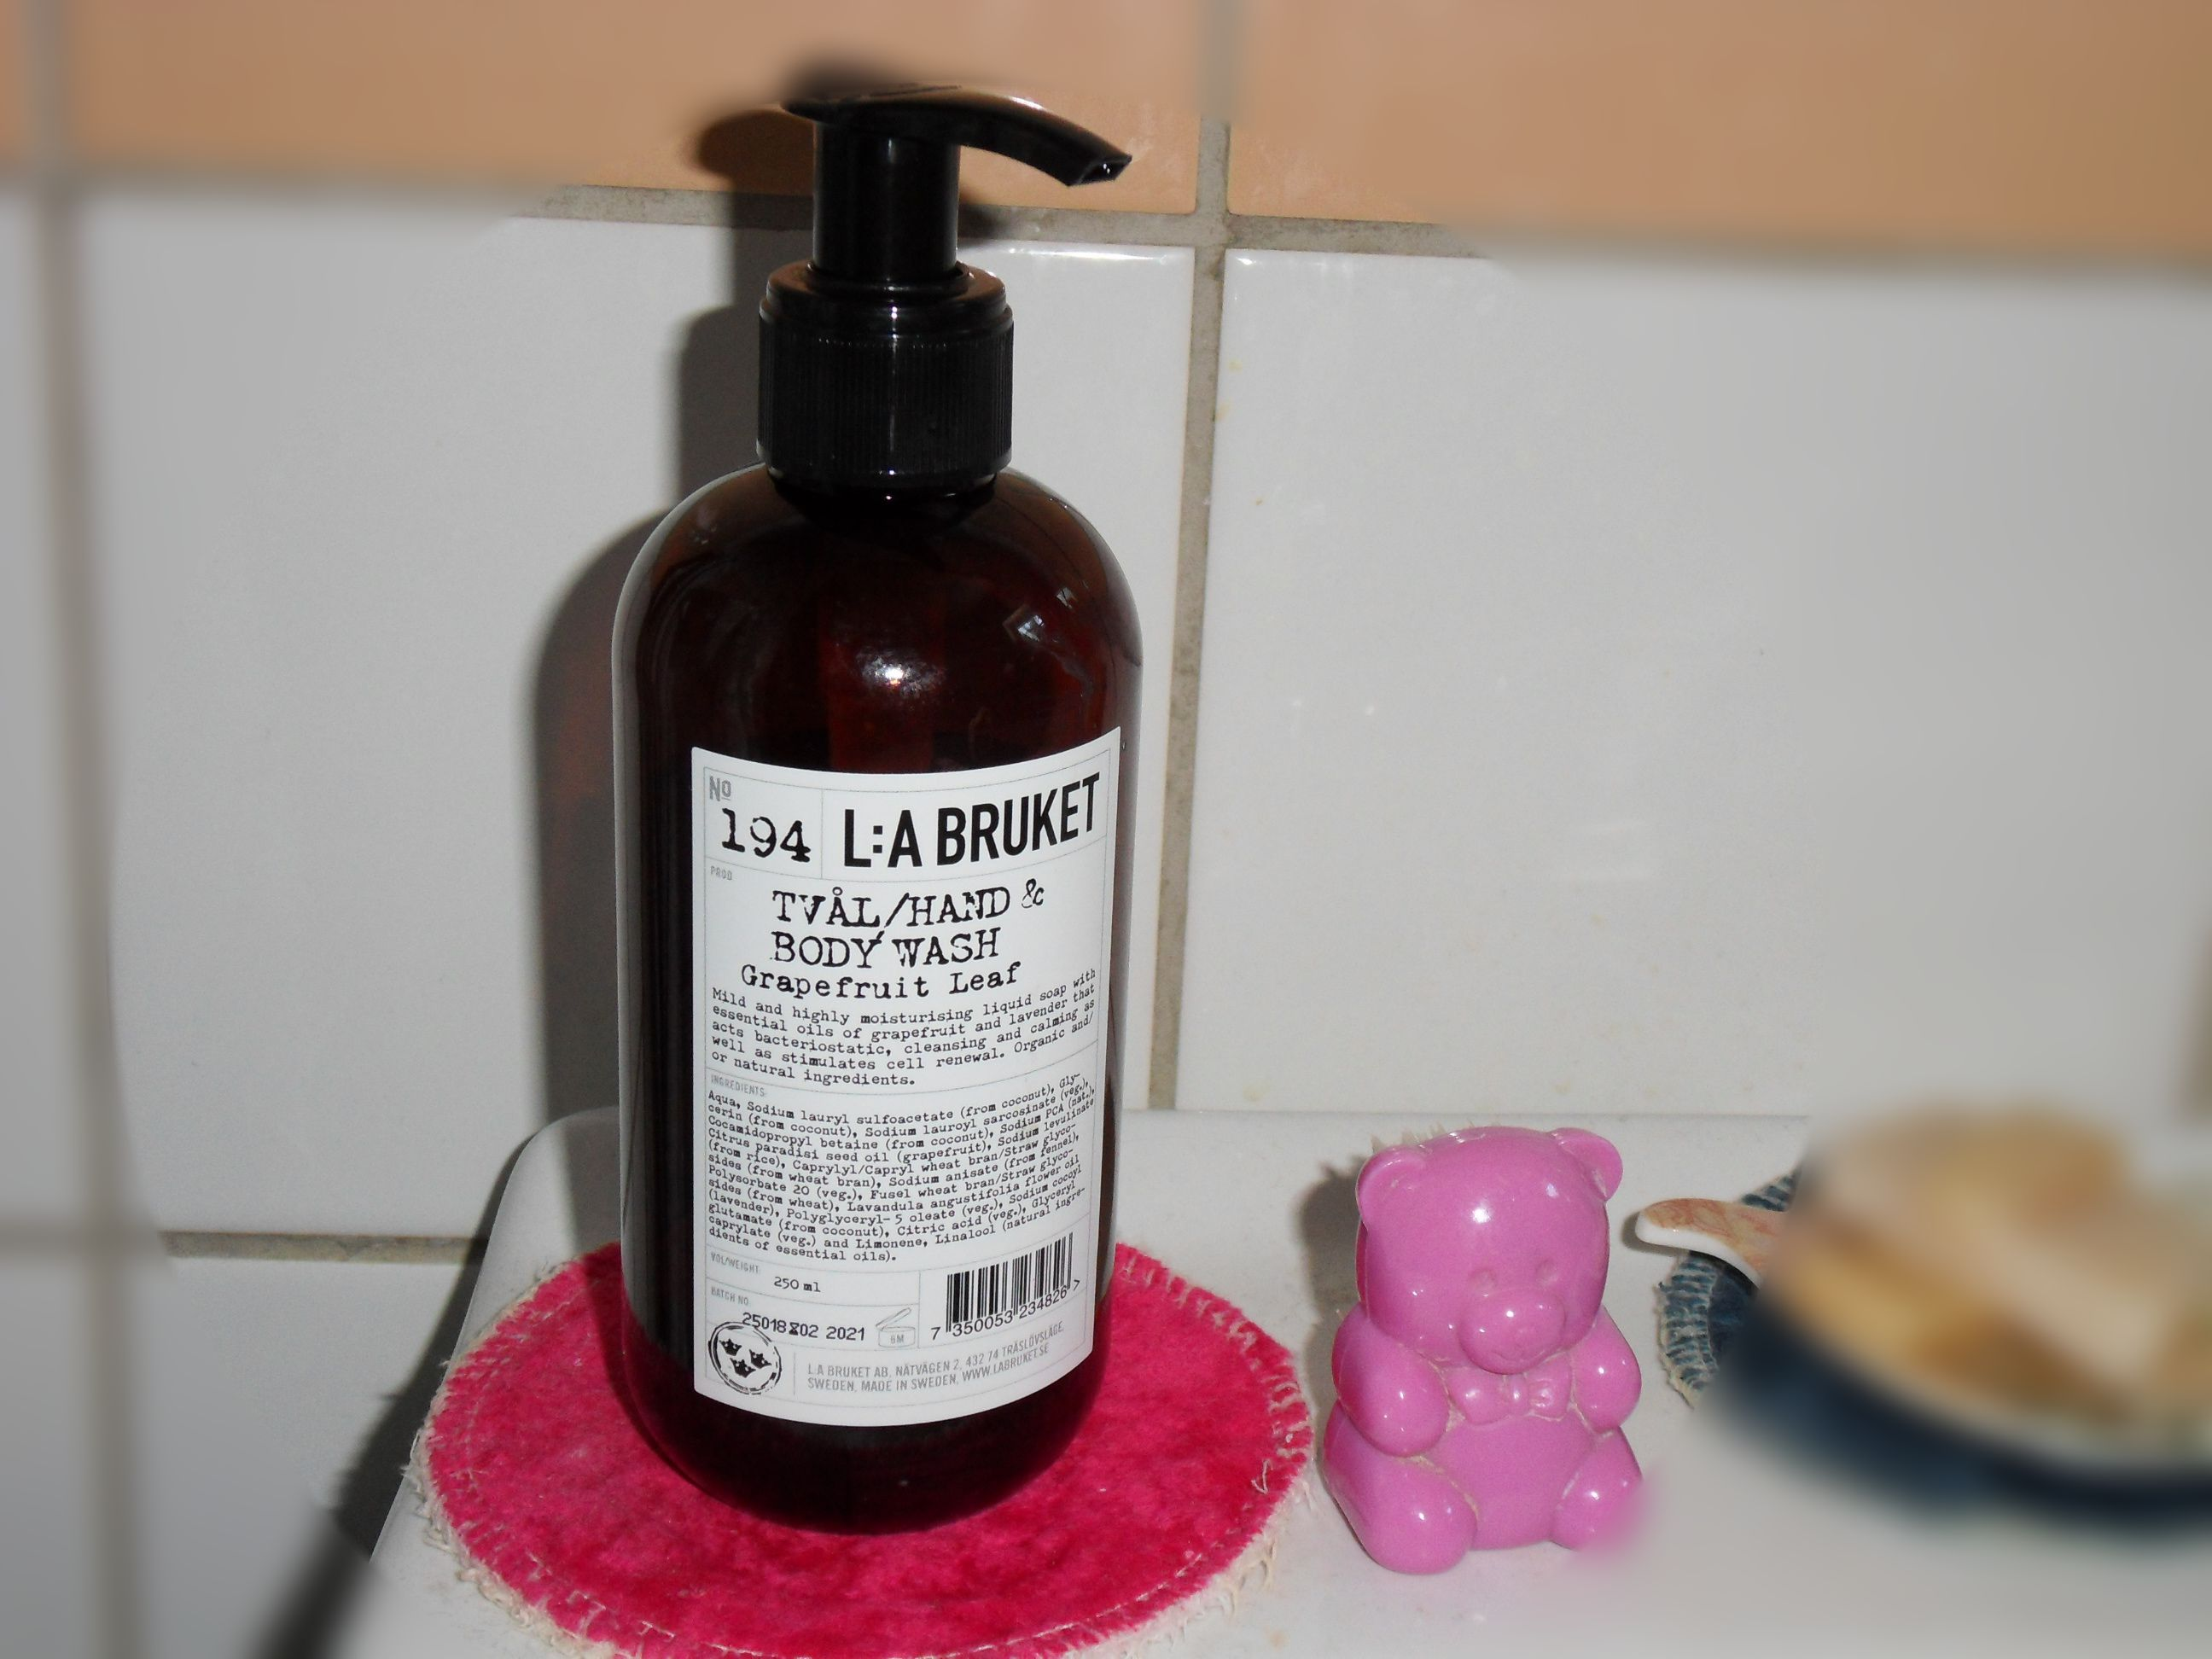 hand and body wash grapefruit leaf